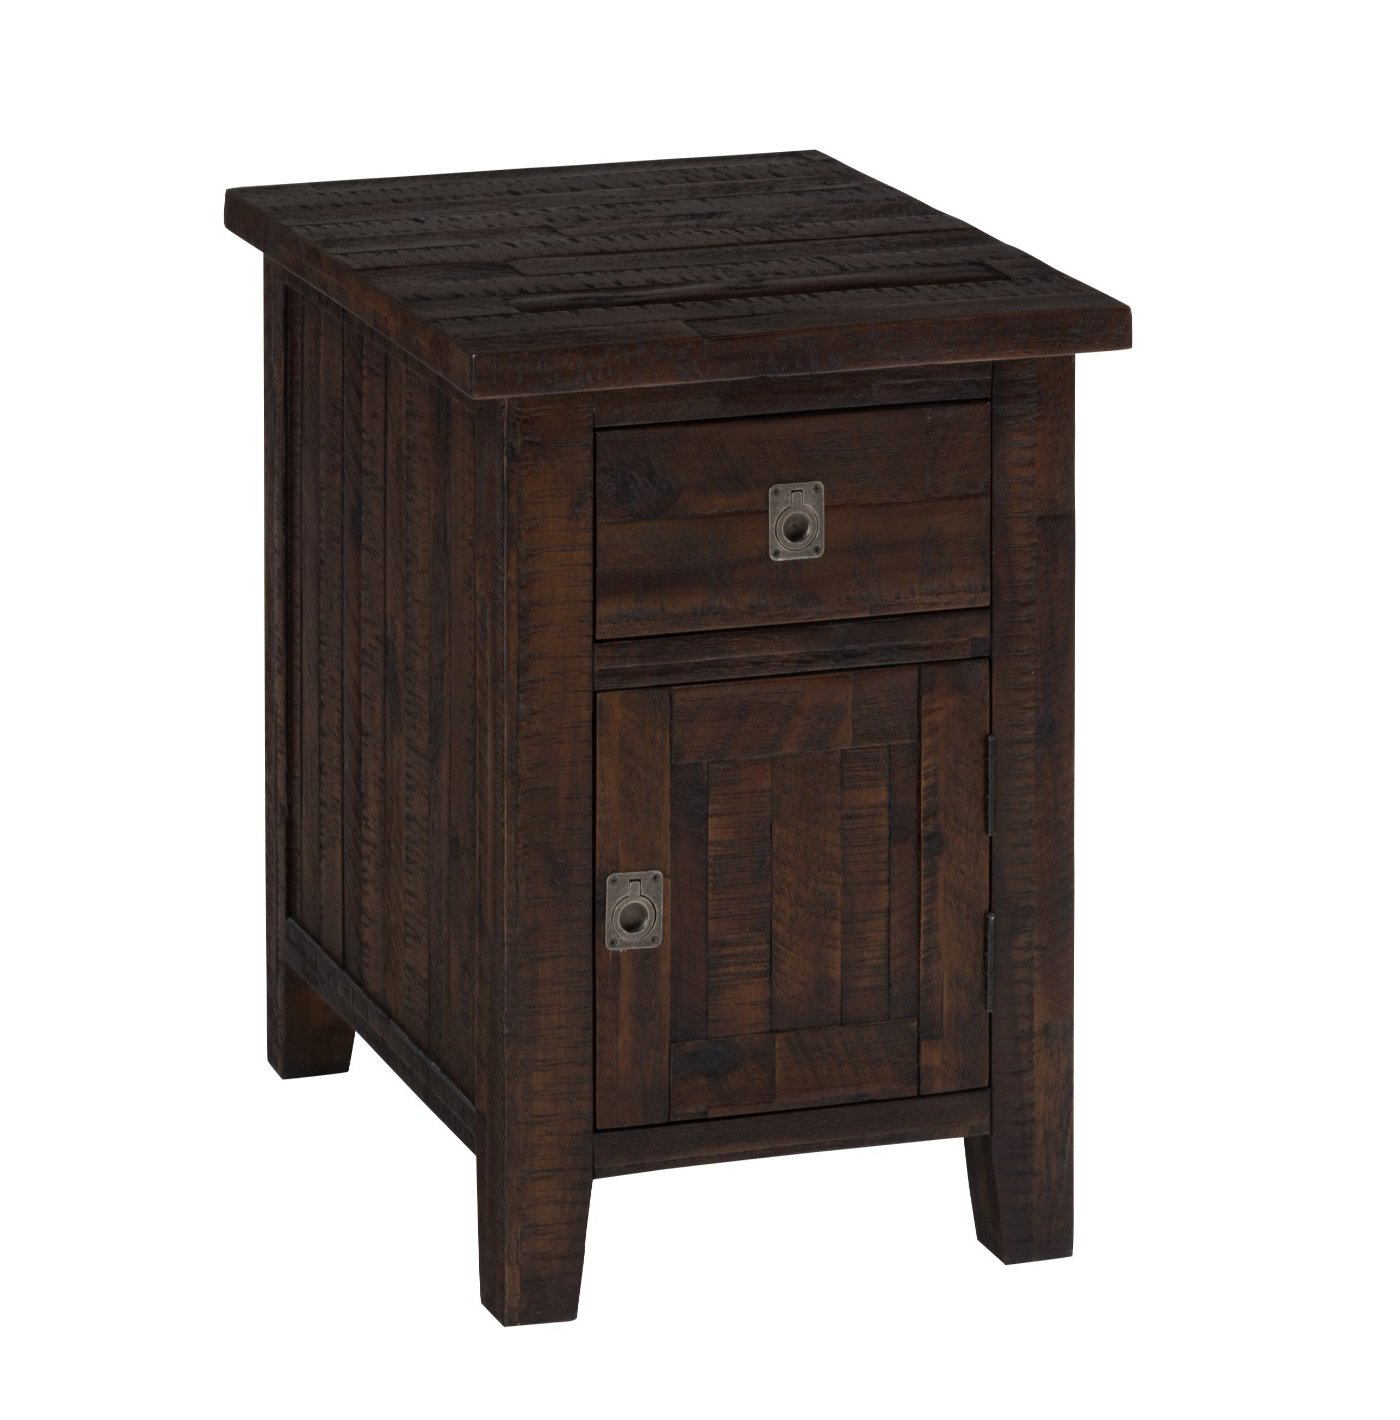 longshore tides thaddeus wooden cabinet end table with storage drawer and bedroom nightstands white french home accessories kmart tools small folding garden side what size sofa